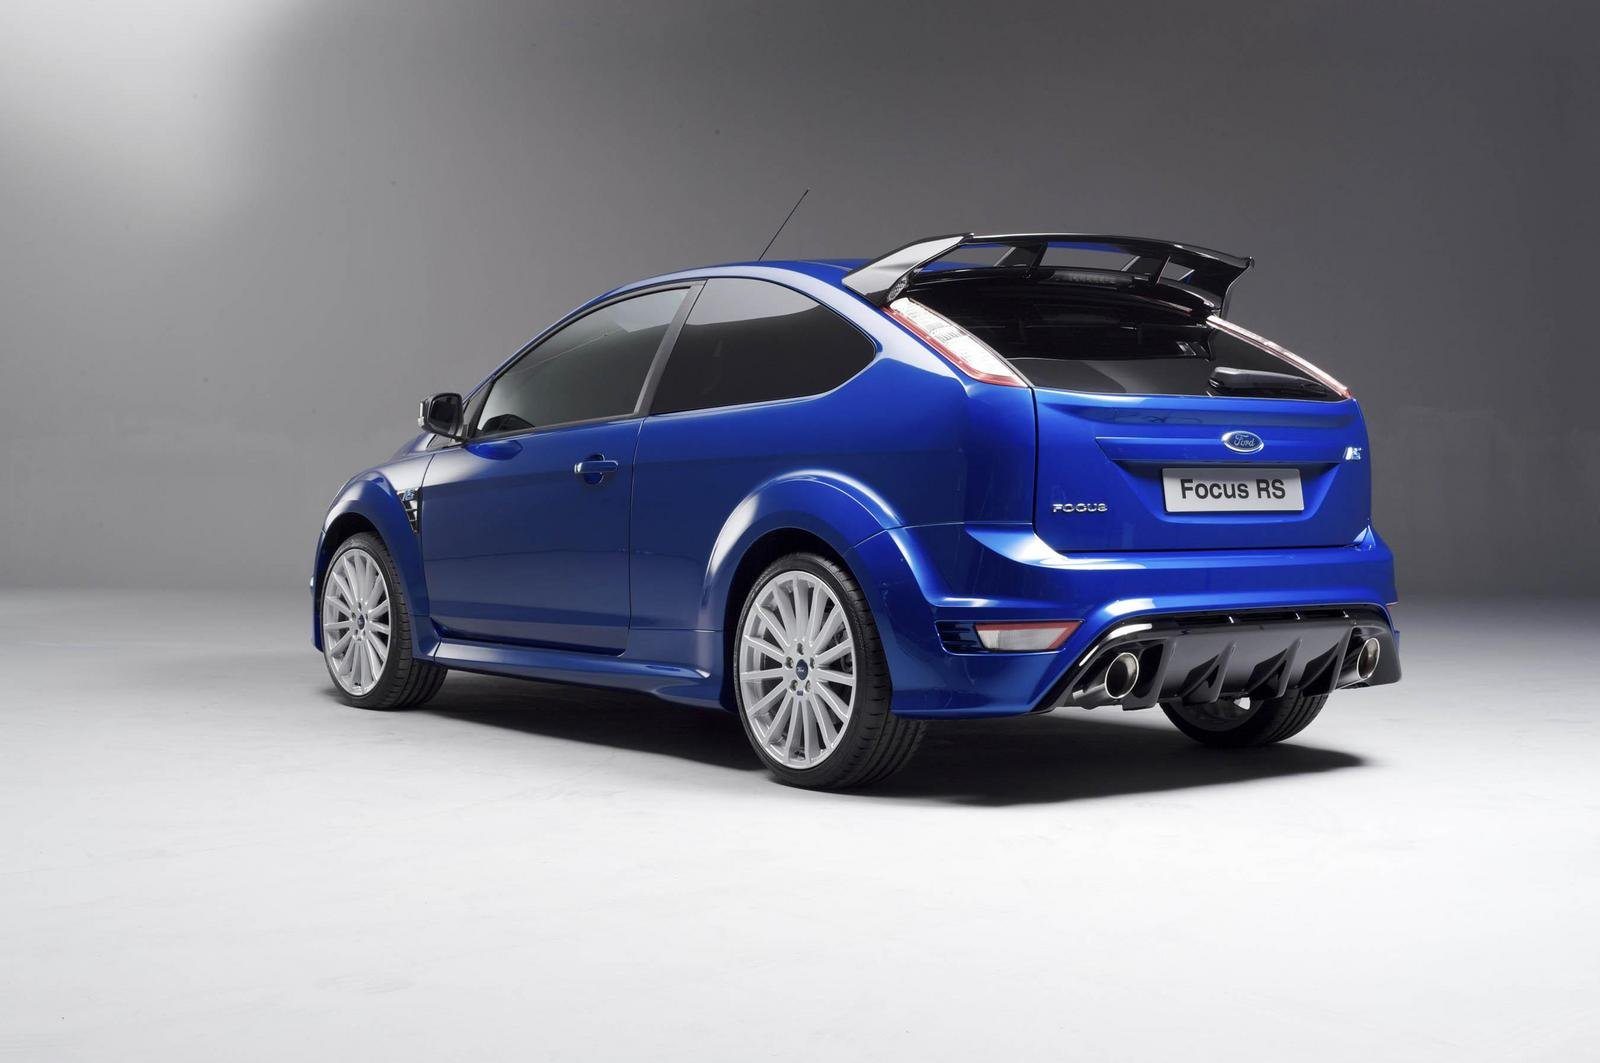 2009 ford focus rs picture 277116 car review top speed. Black Bedroom Furniture Sets. Home Design Ideas